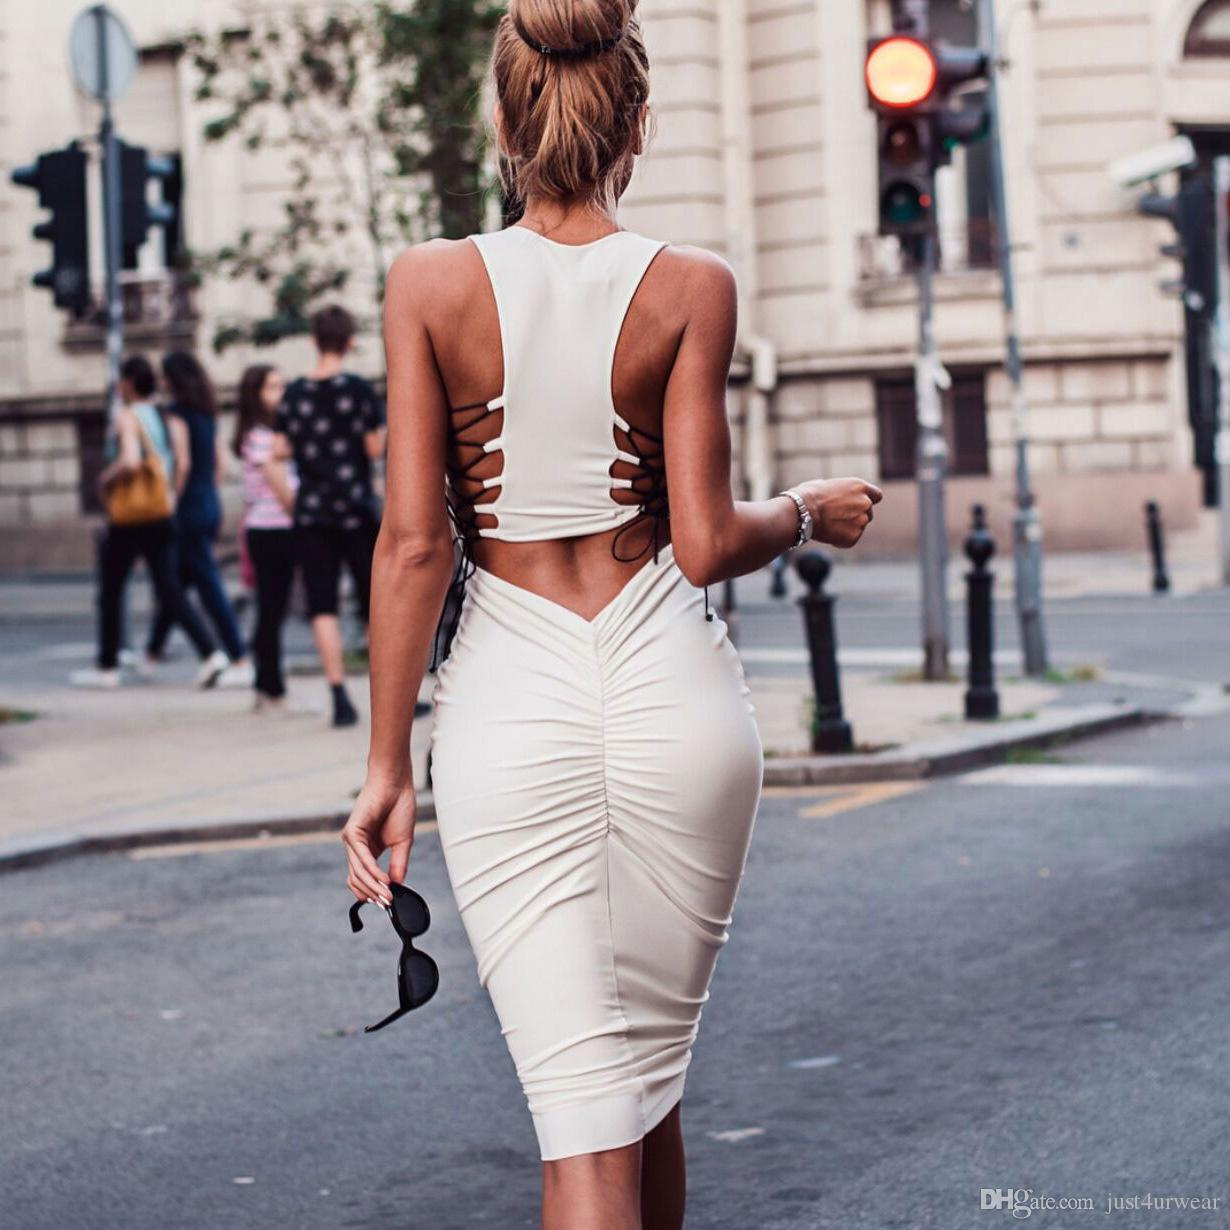 Woman Modal Hollow Out With Belt Design Bandage Dresses Ladies Empire Sexy Party Club Dreeses Womens Skinny Bodycon Sheath Dresses